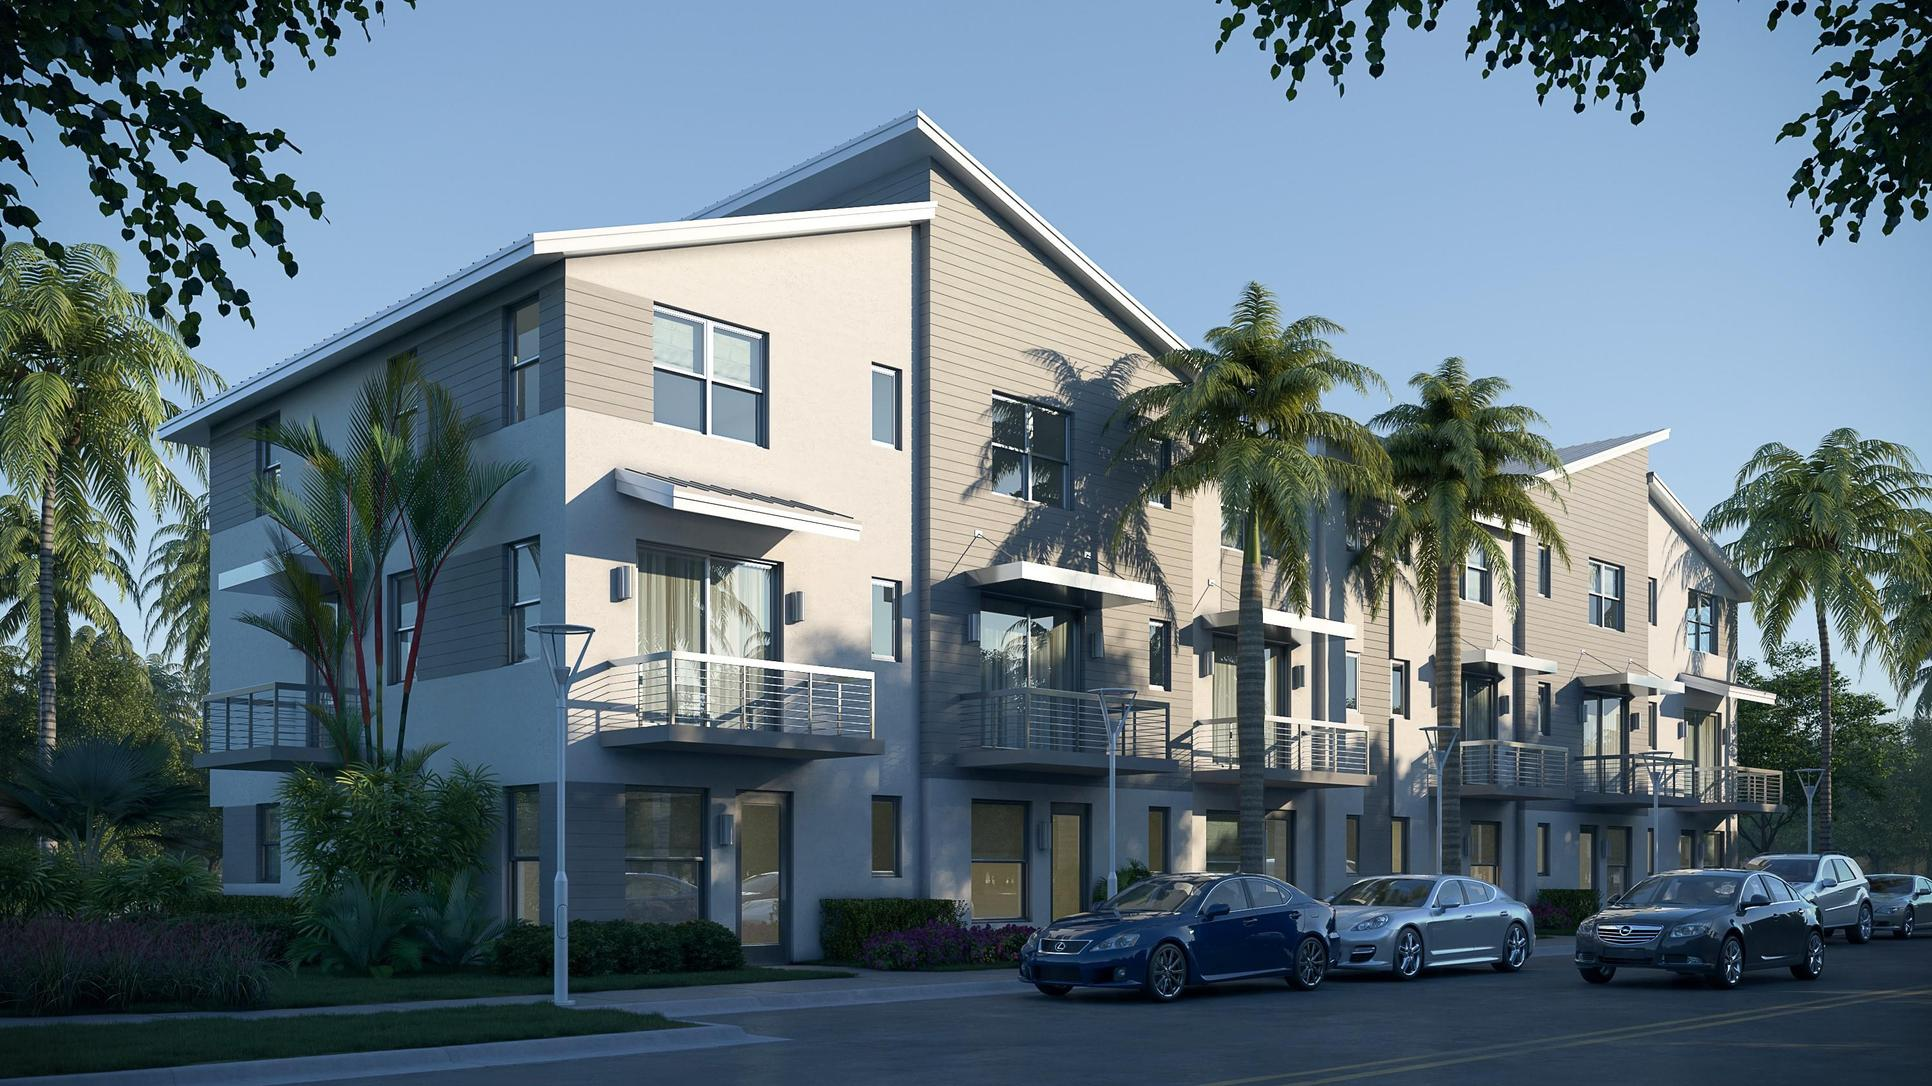 The Village at Wilton Manors,33305